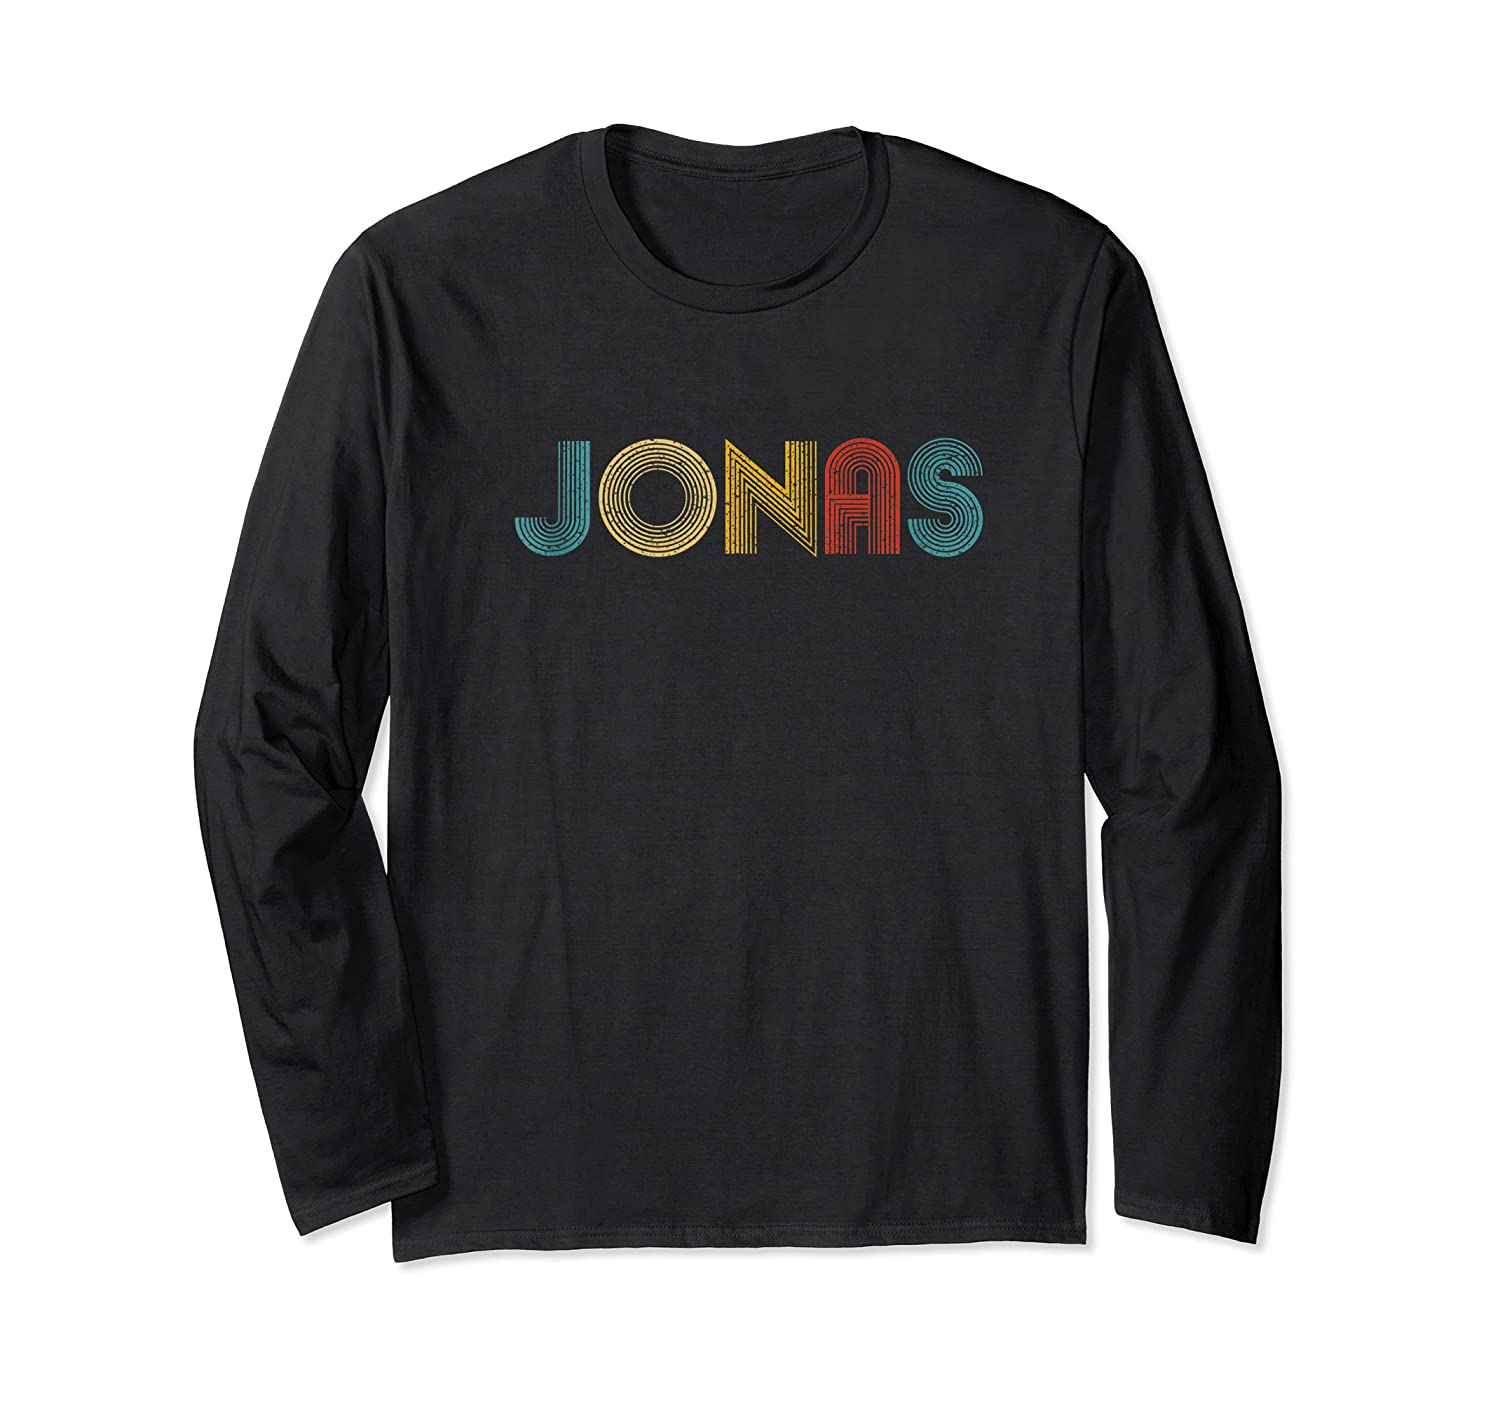 Jonas First Given Name Pride Vintage Distressed Tank Top Shirts Long Sleeve T-shirt